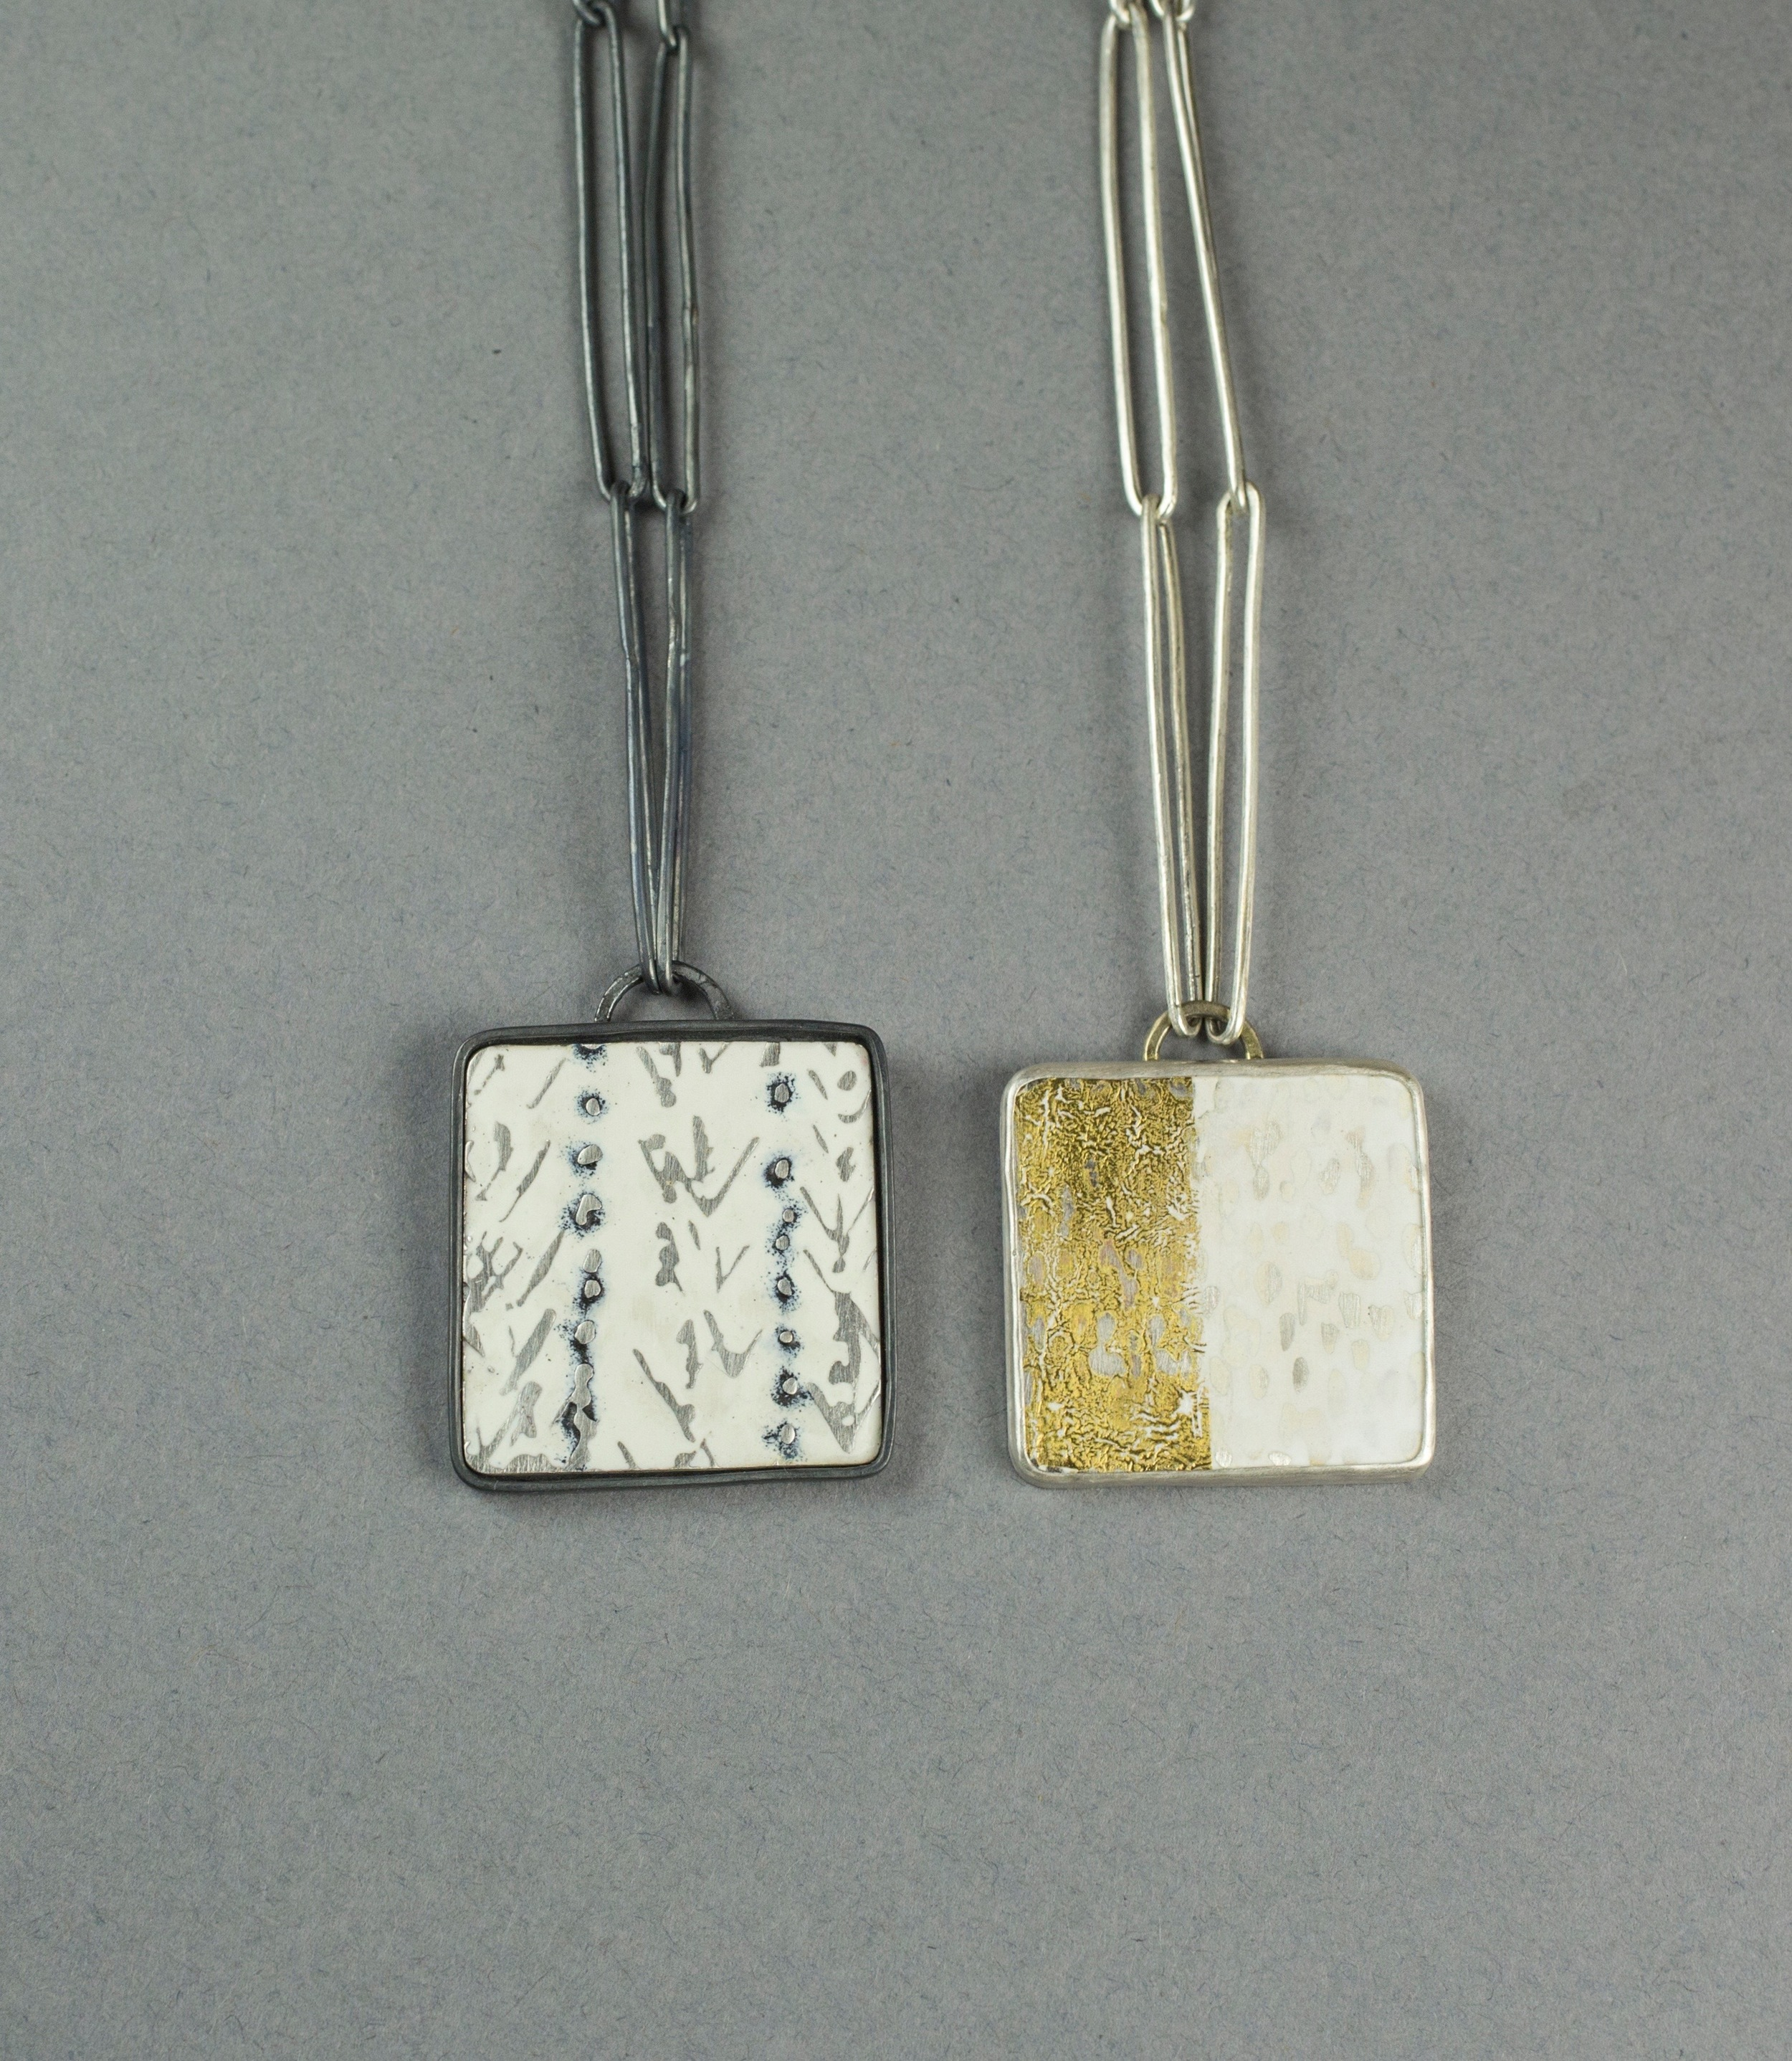 Two square pendants